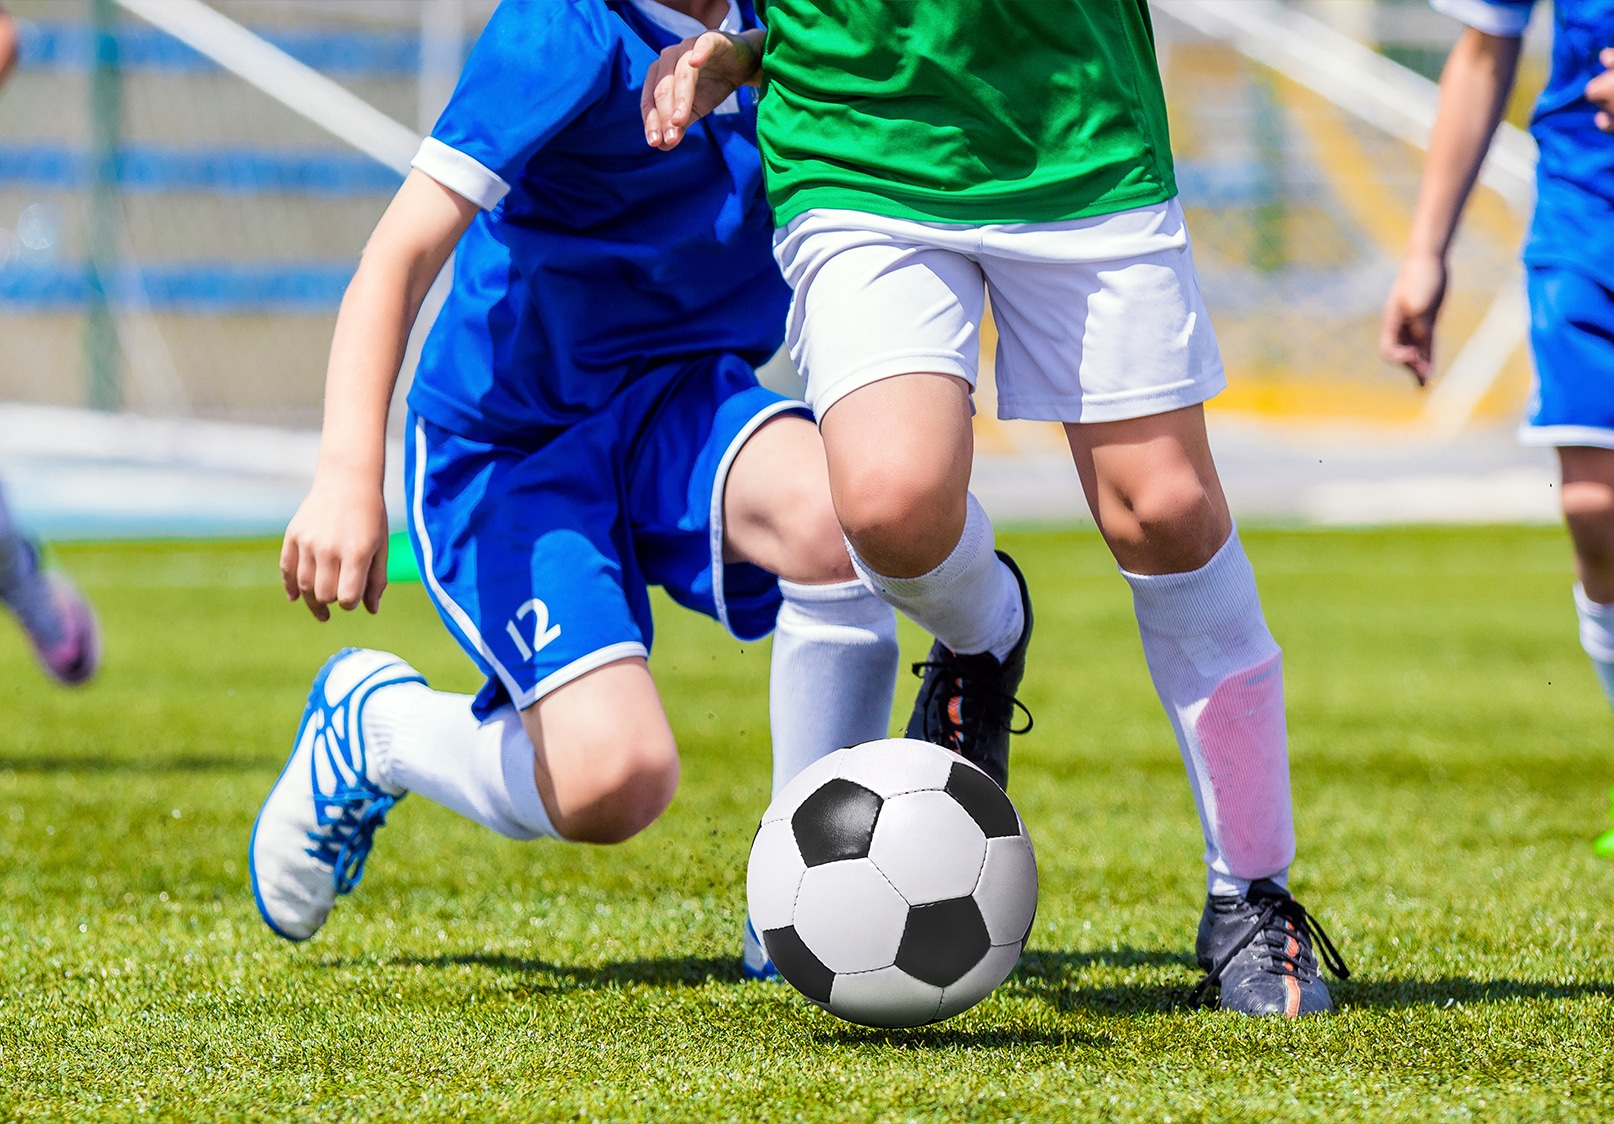 Pittsburg Parks & Recreation offers British Soccer Camp